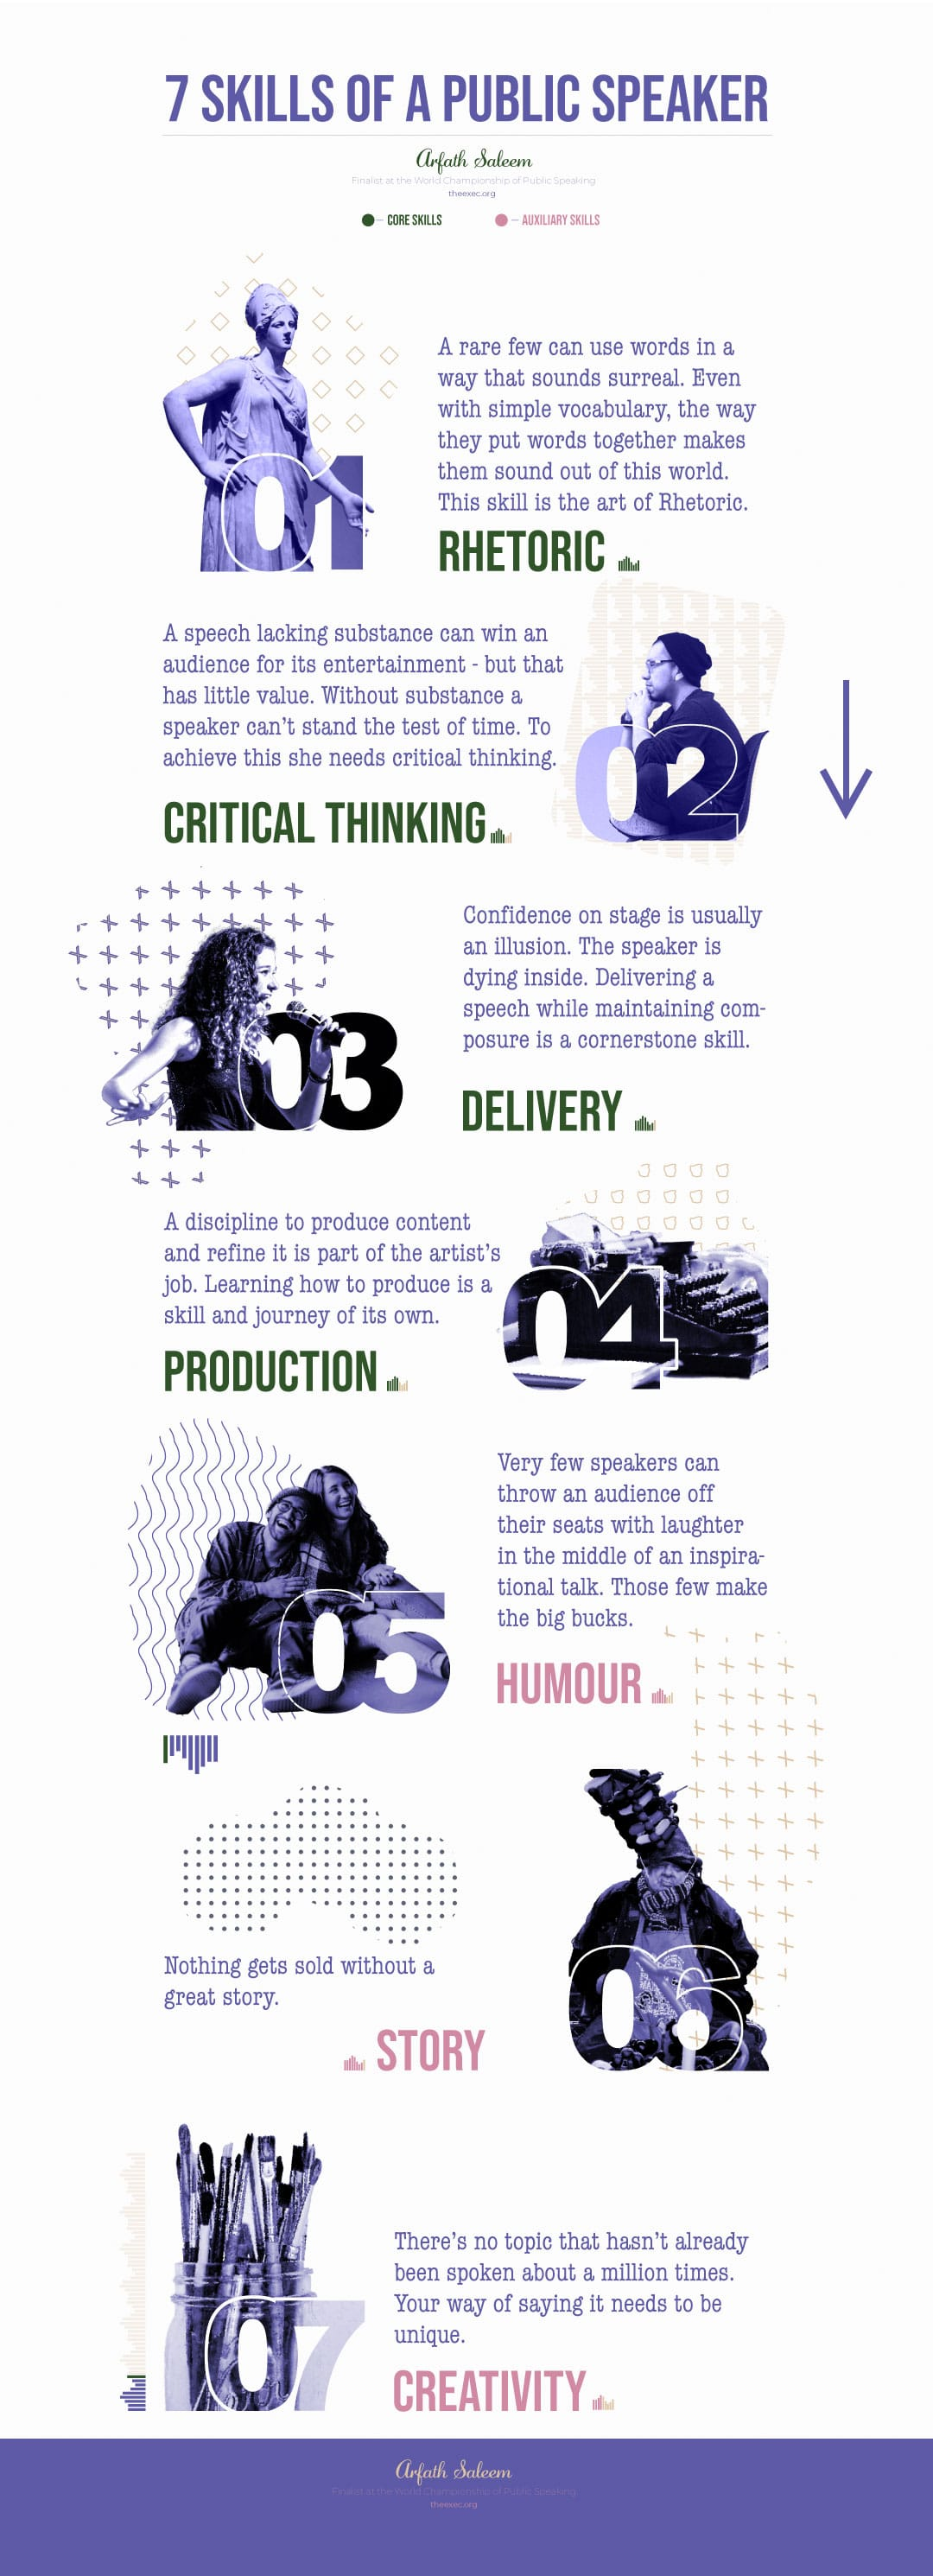 7 skills of a public speaker infographic by Arfath Saleem published on The Executive Blog